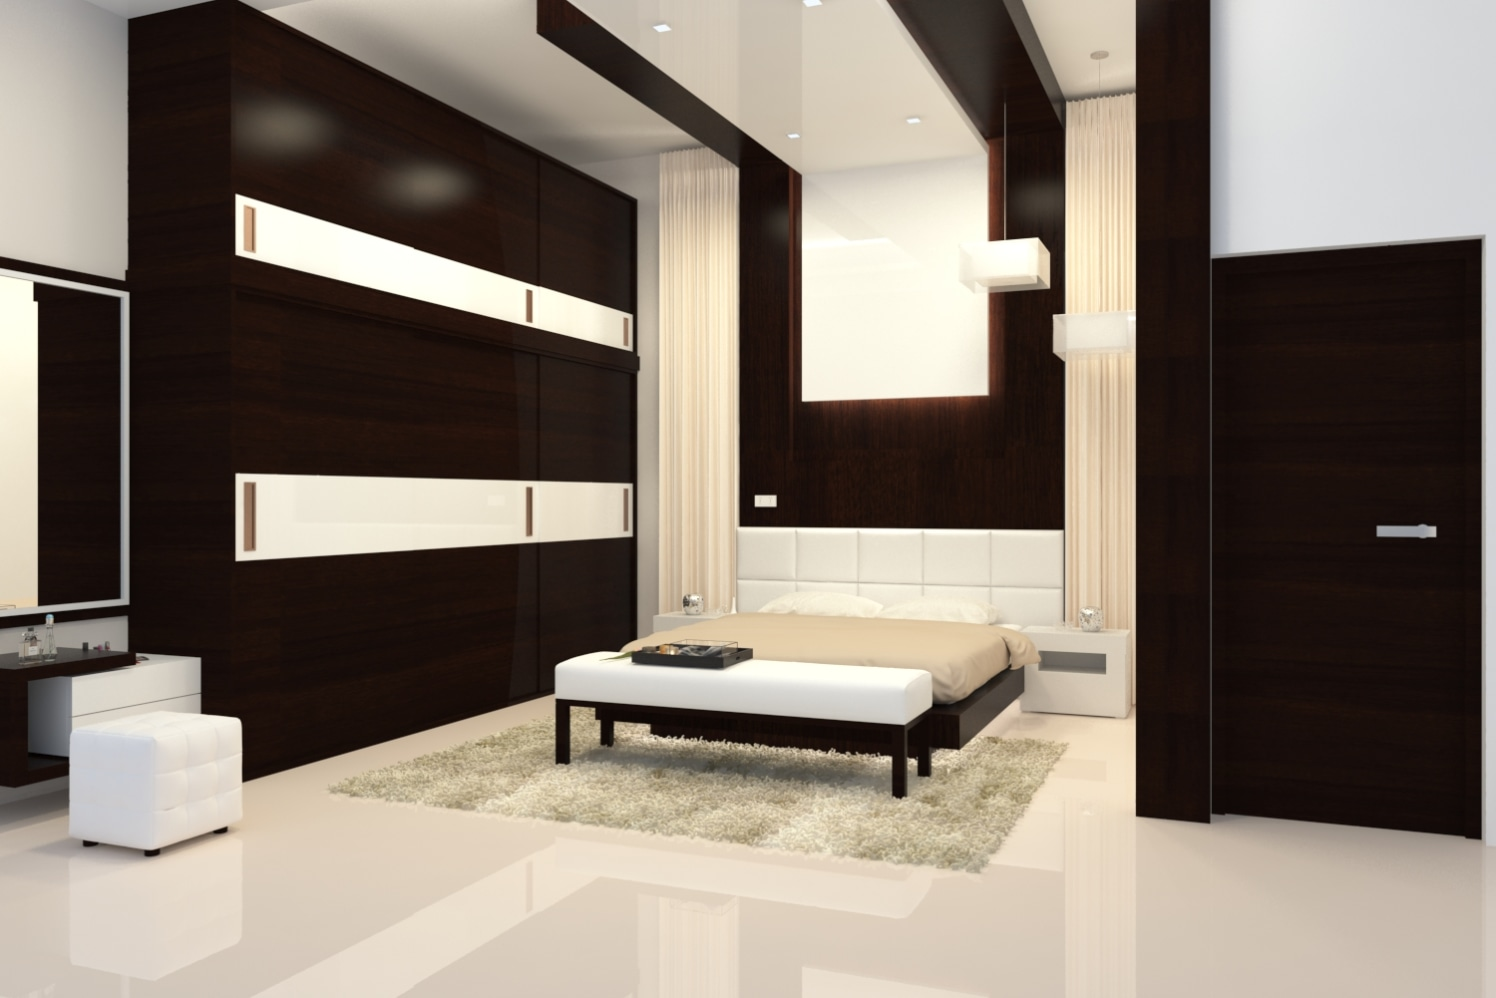 Extended wood work theme bedroom with high ceiling height by Roshan Ashta Contemporary | Interior Design Photos & Ideas